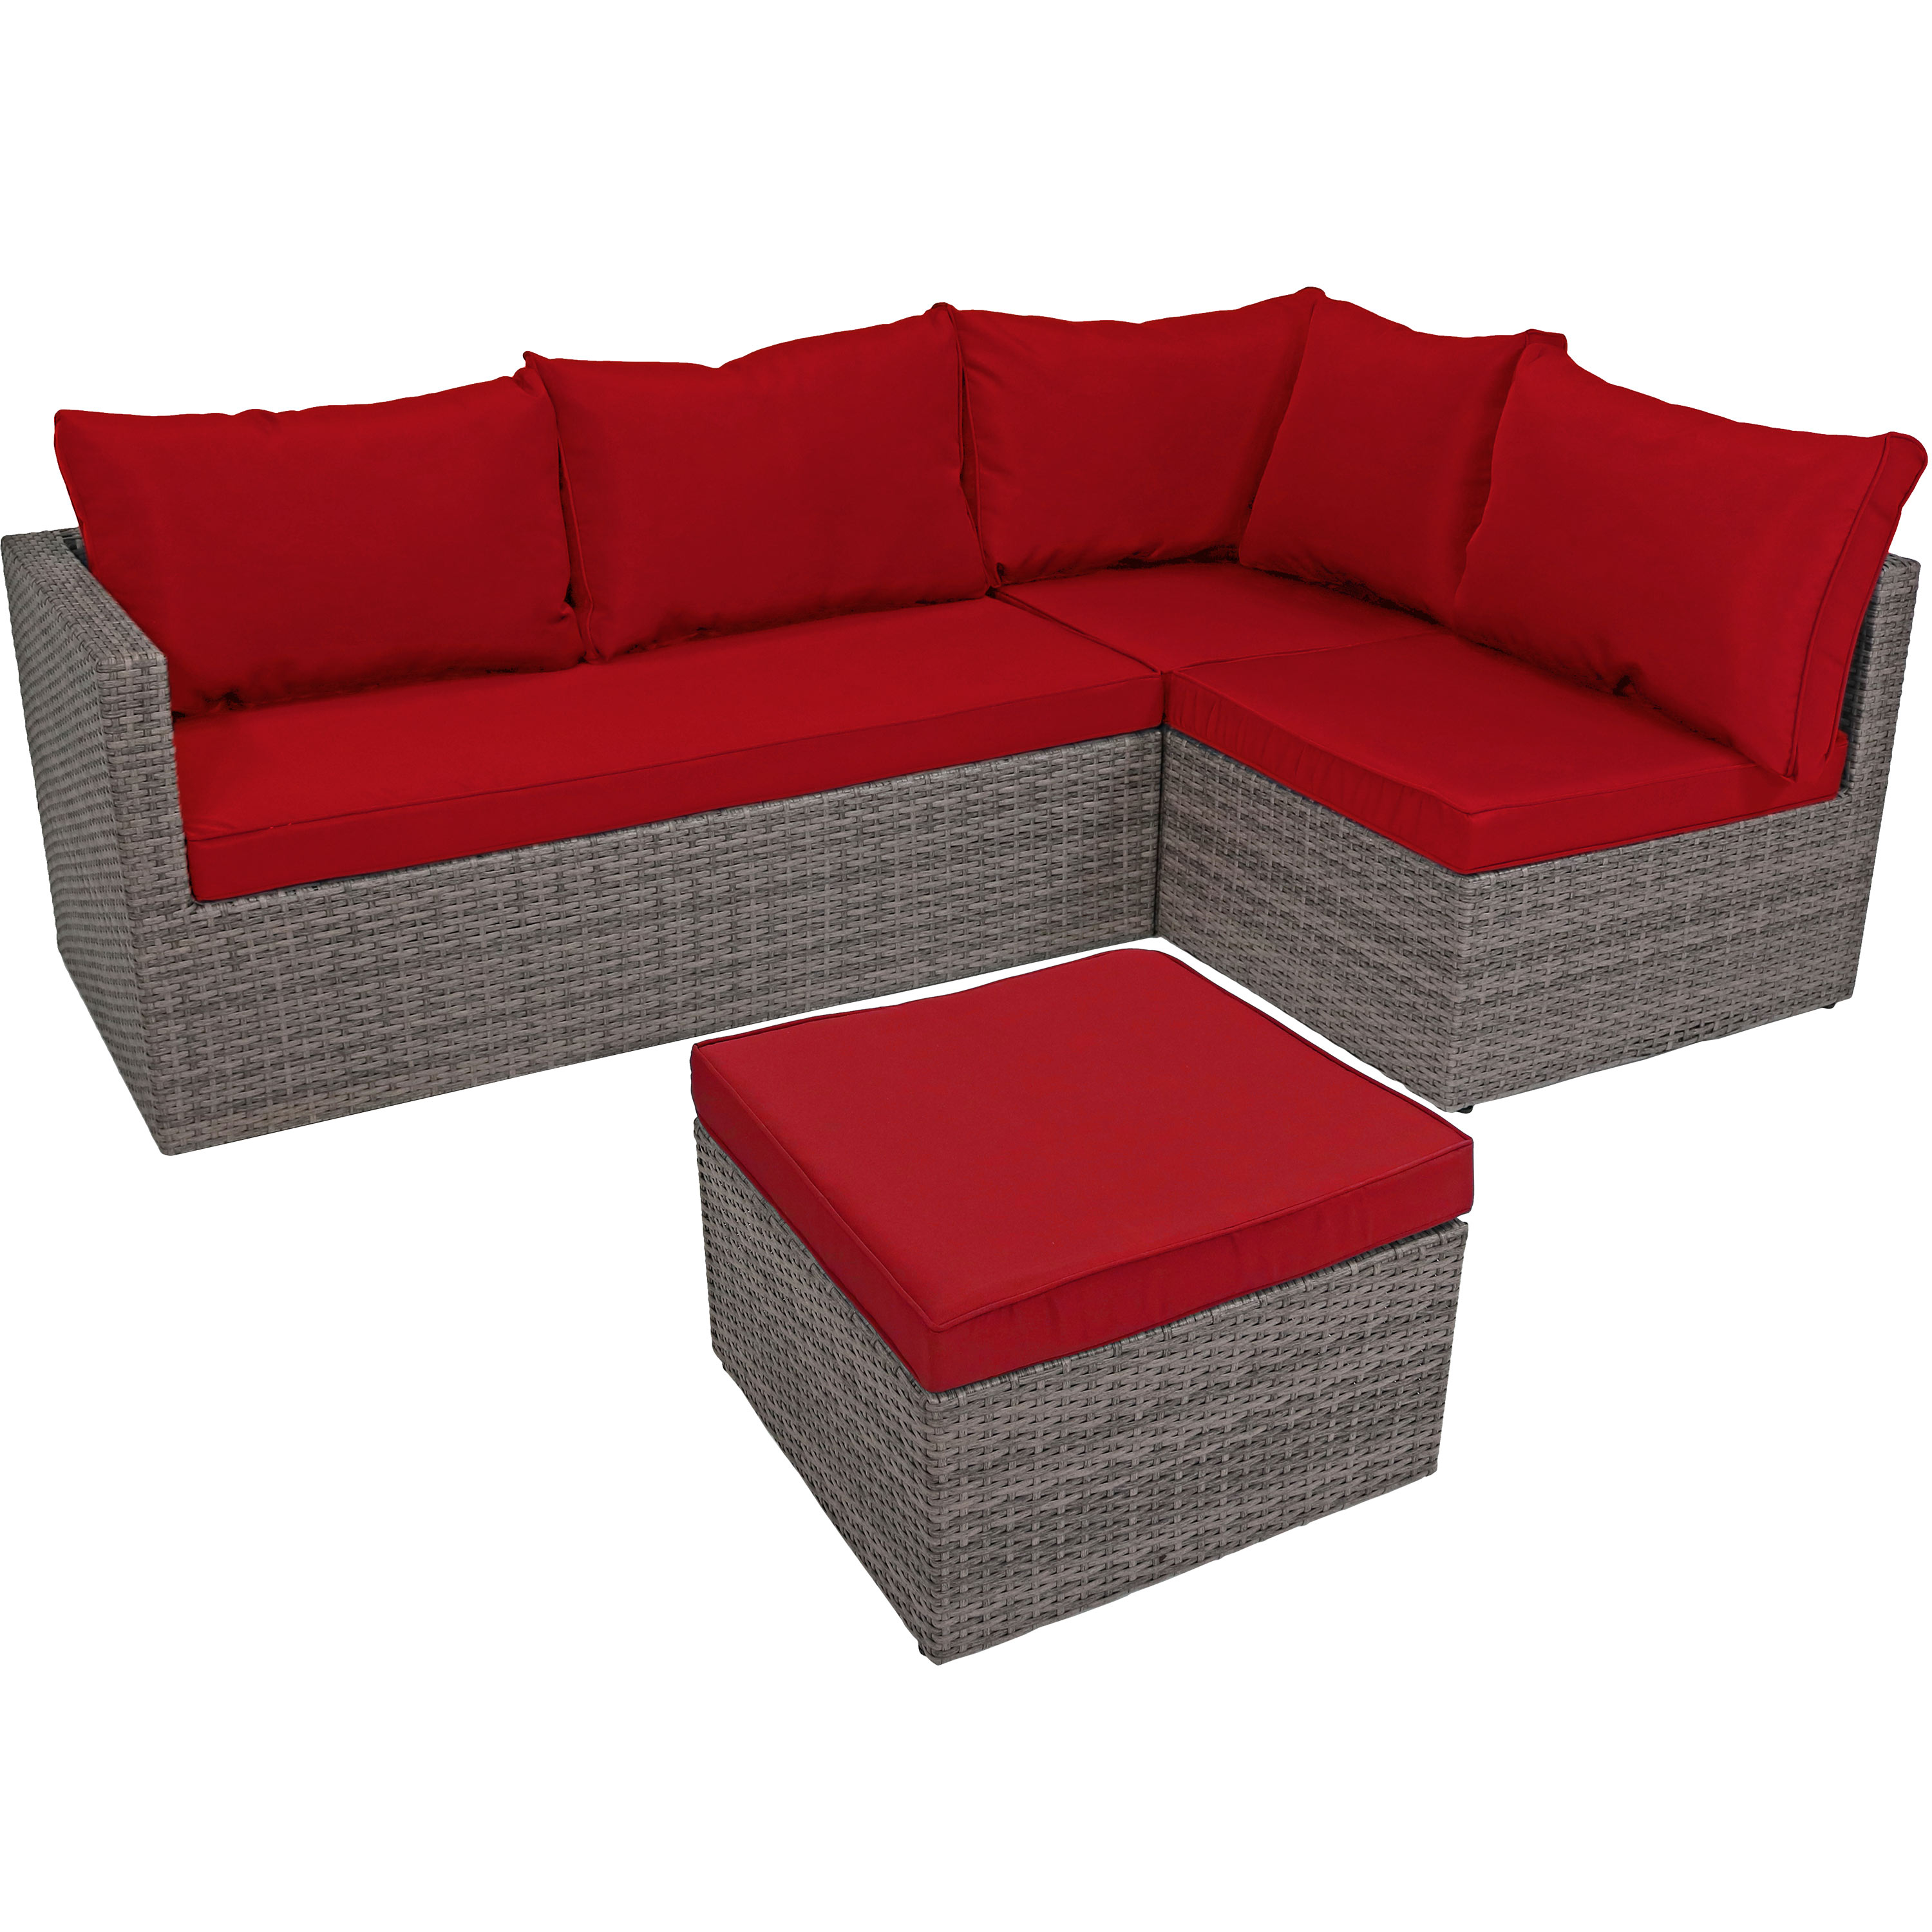 Port Antonio Wicker Rattan Patio Sofa Sectional Set Dark Red Cushions Photo